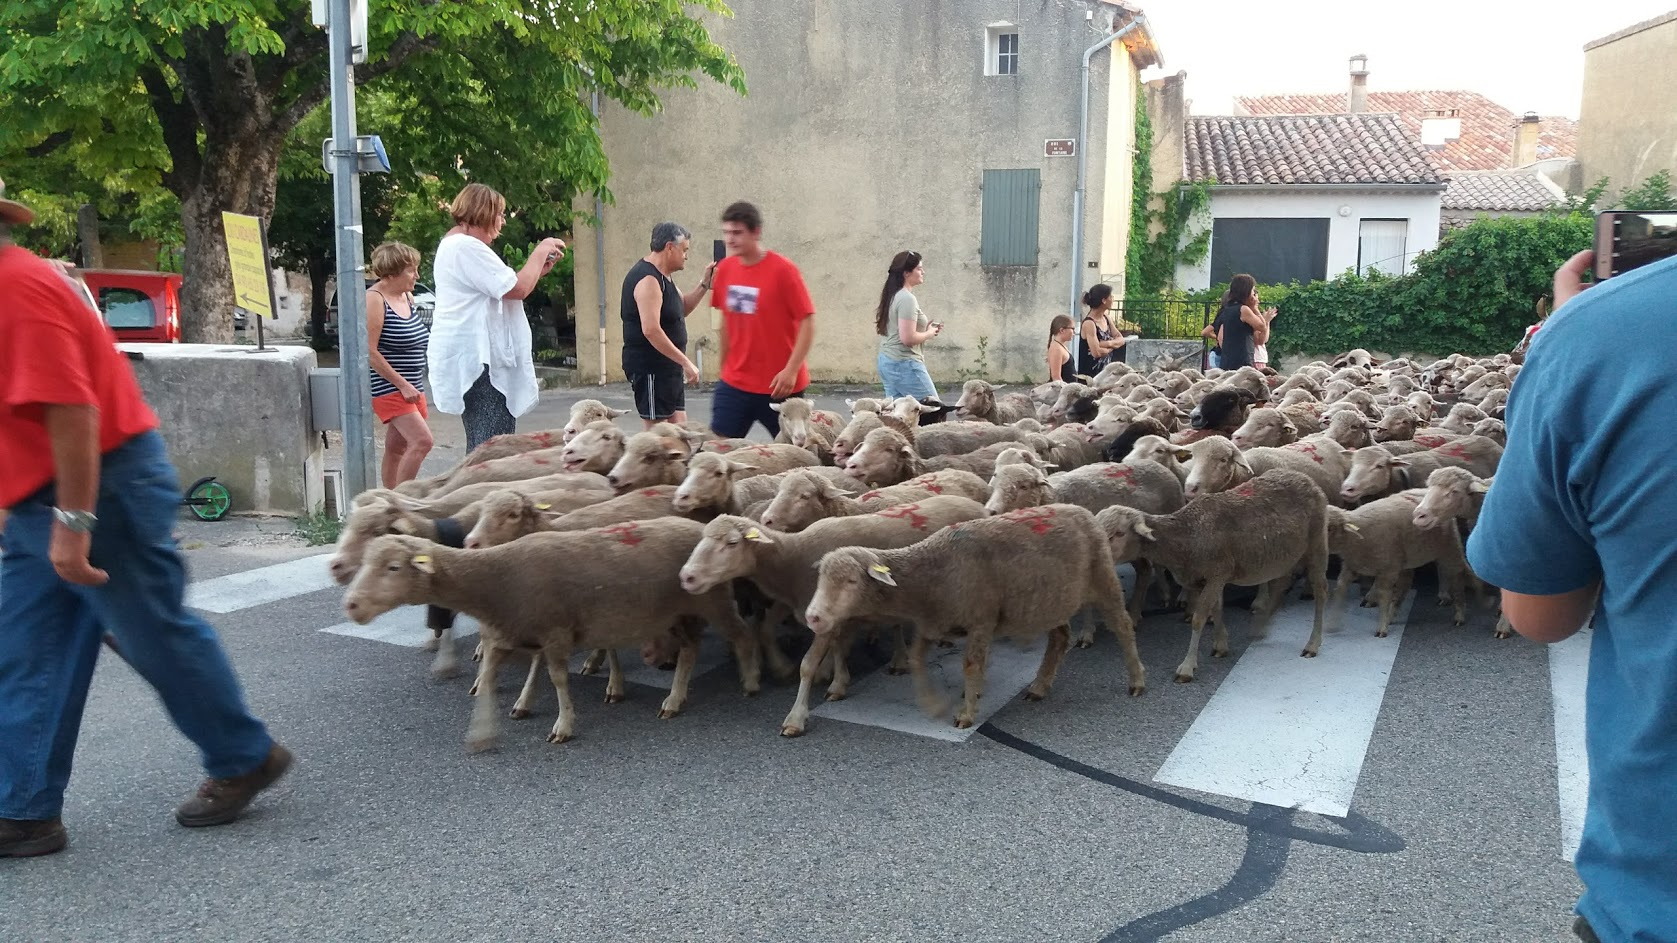 loucardalines-gite-stcolombe-bedoin-transhumance-vaucluse-provence-famille -vacances